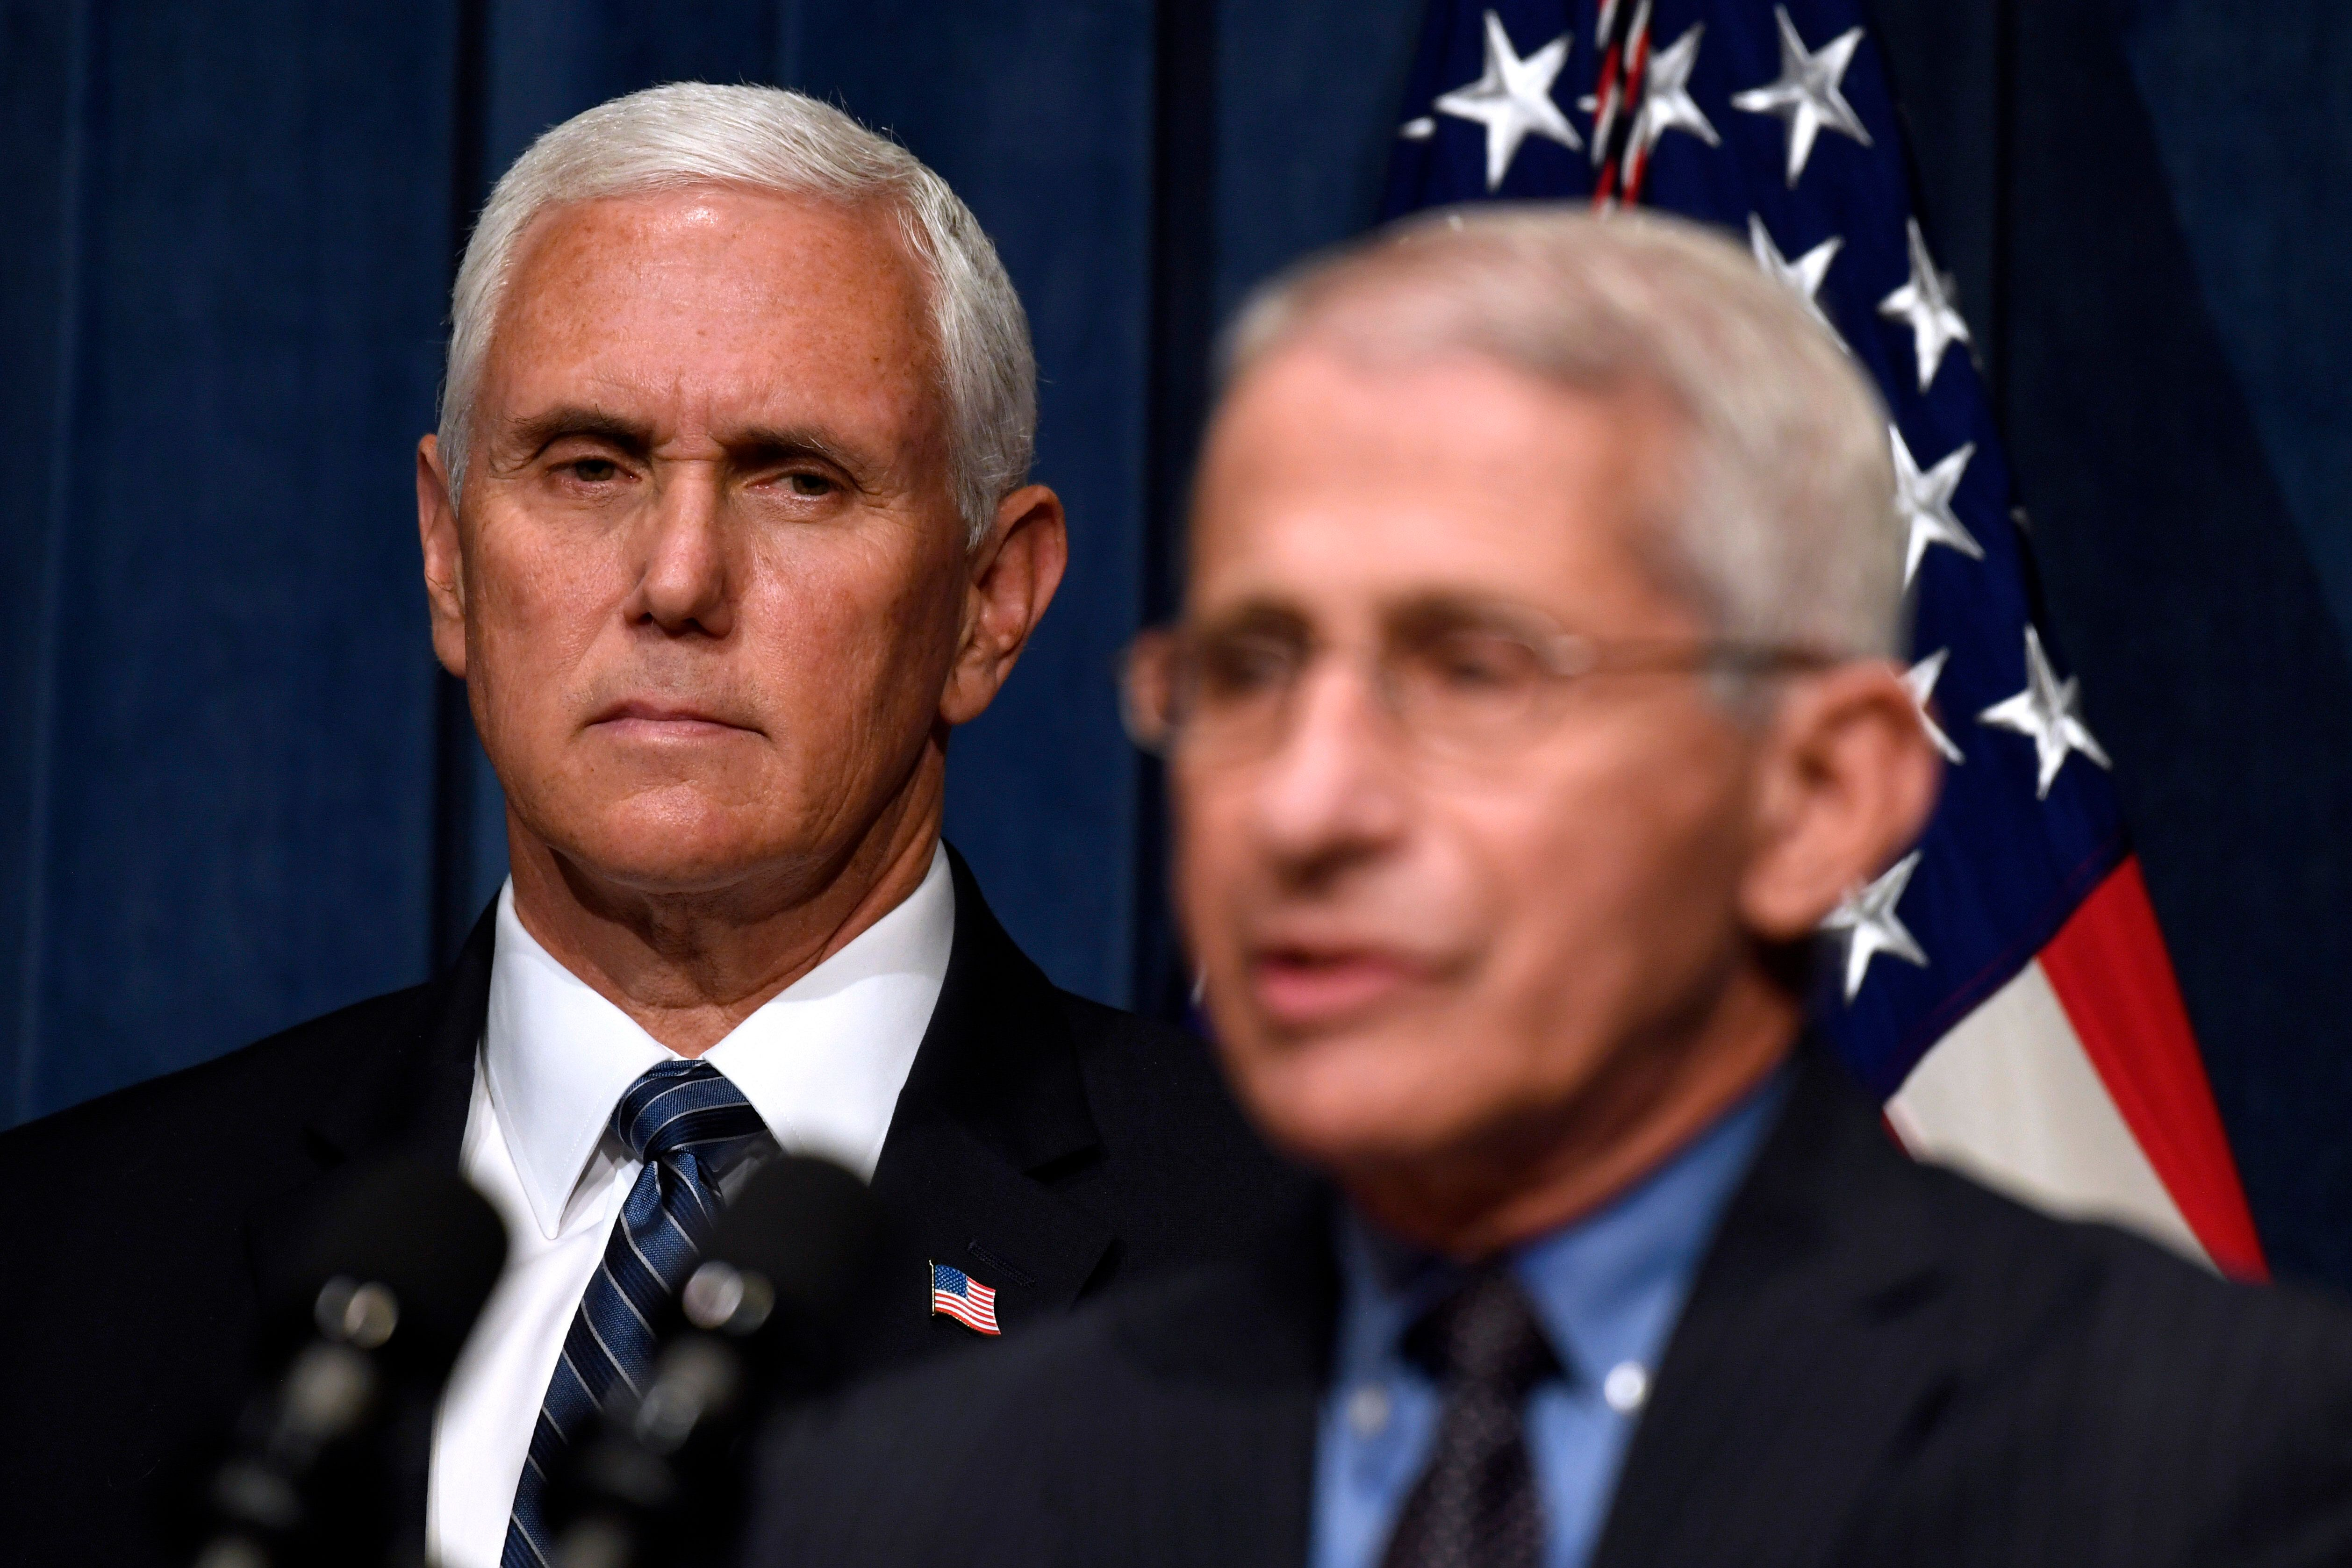 Director of the National Institute of Allergy and Infectious Diseases Dr. Anthony Fauci, right, speaks during a news conferen